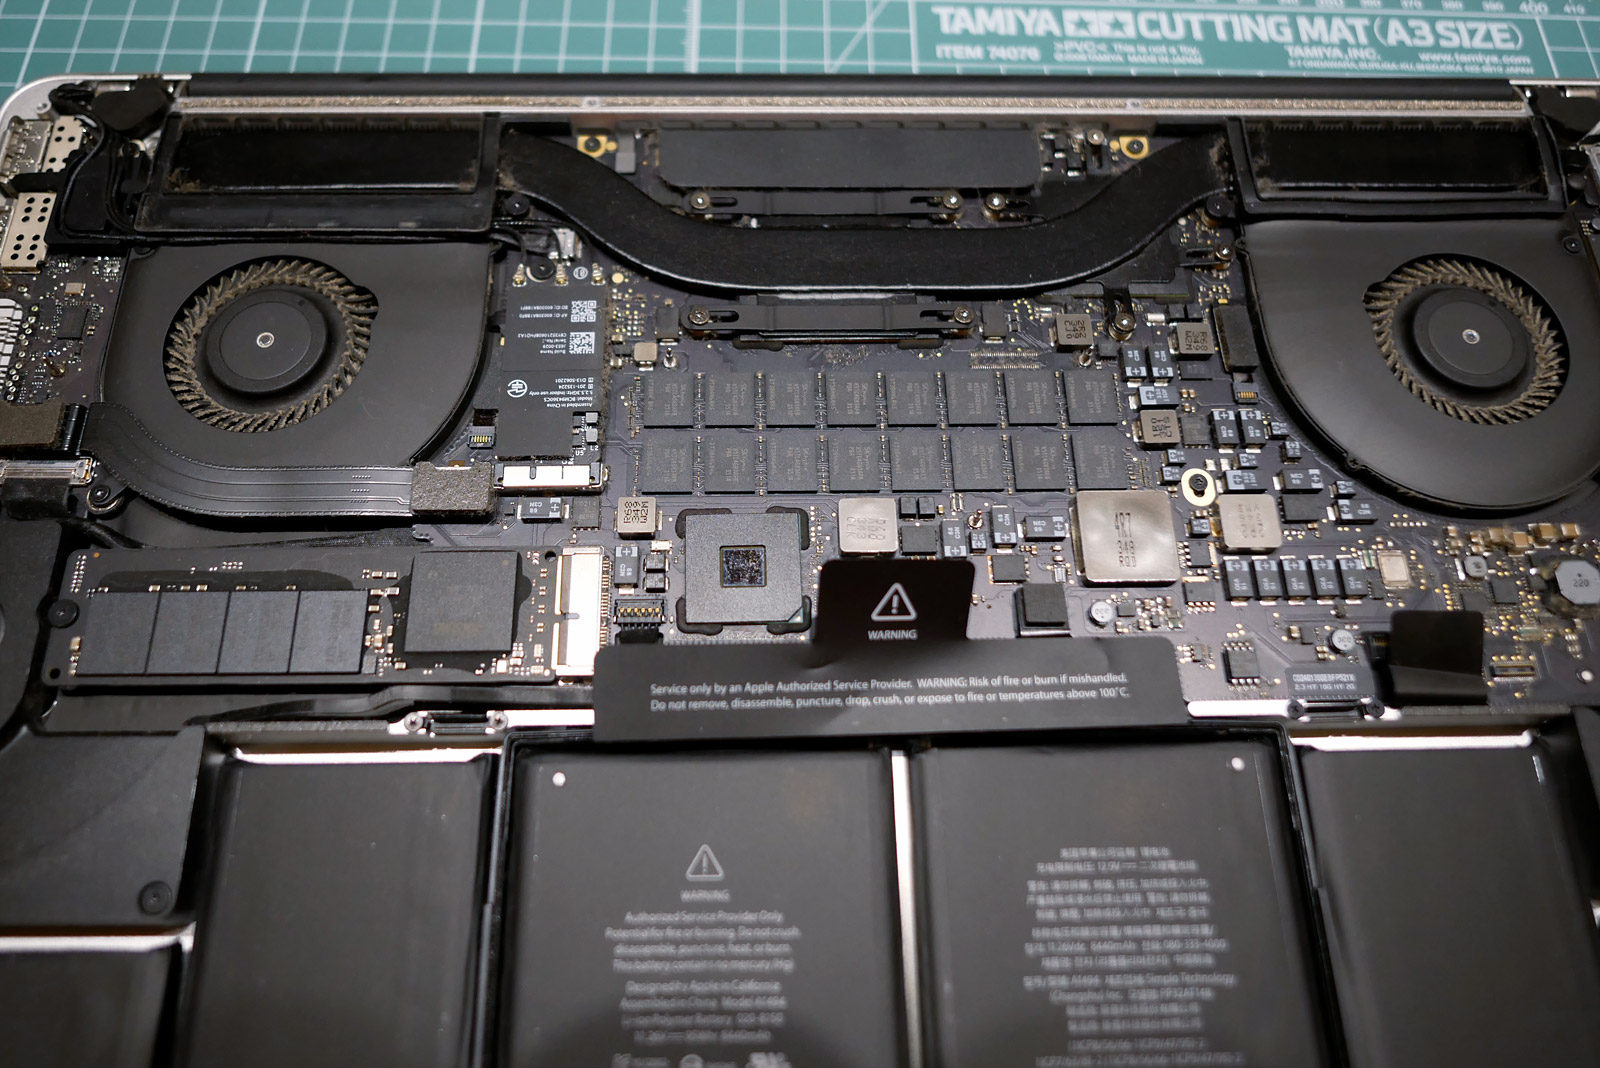 macbook pro retina15 late2013